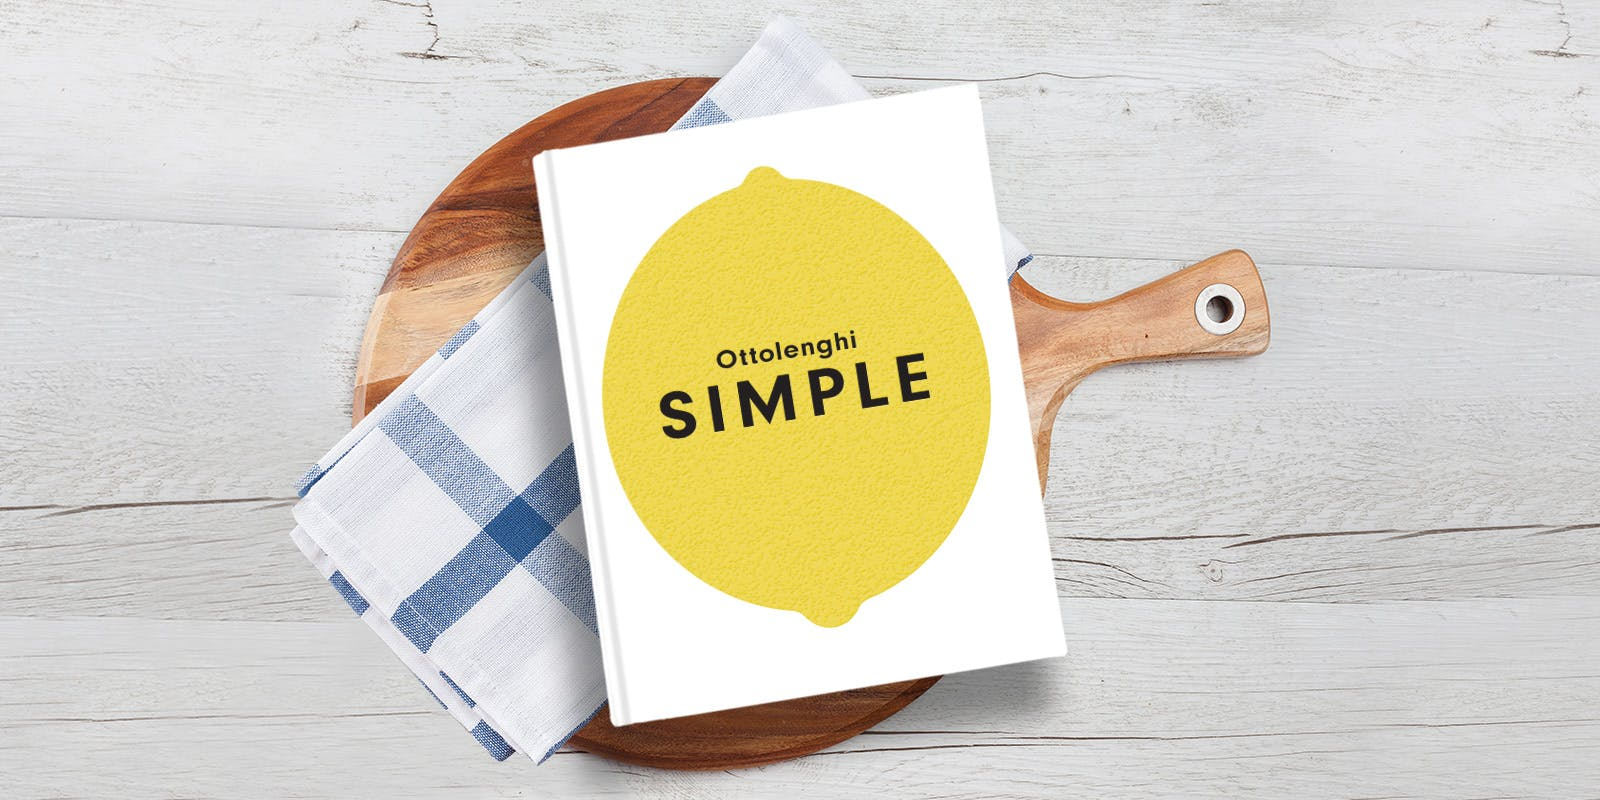 Ottolenghi on Simple